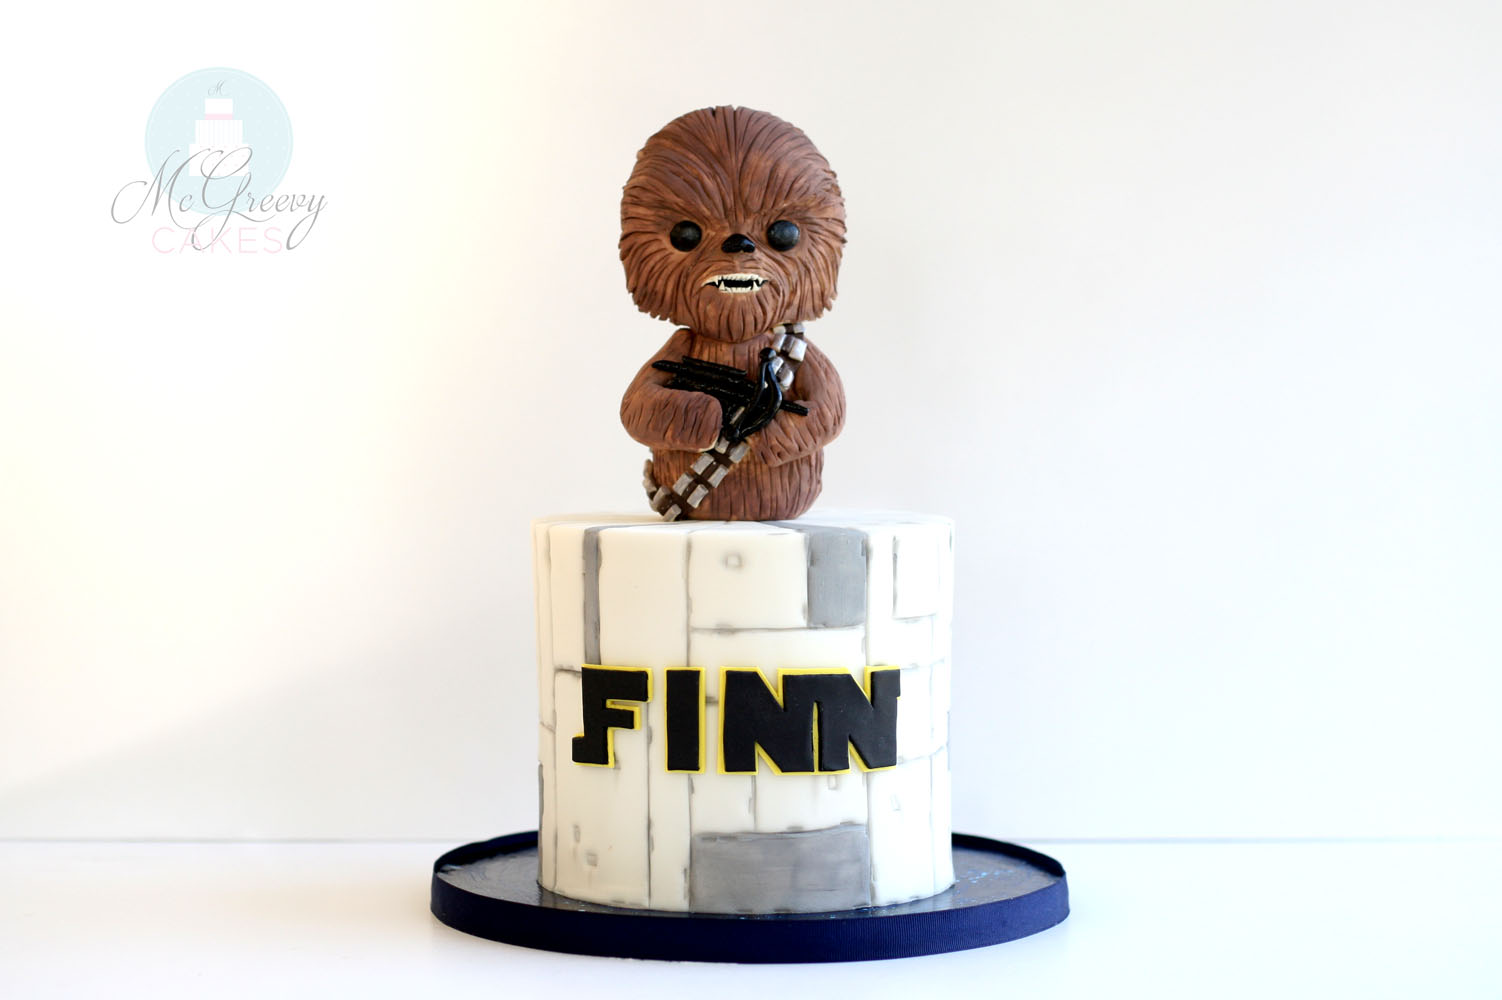 How To Make A Simple Chewbacca Star Wars Cake Mcgreevy